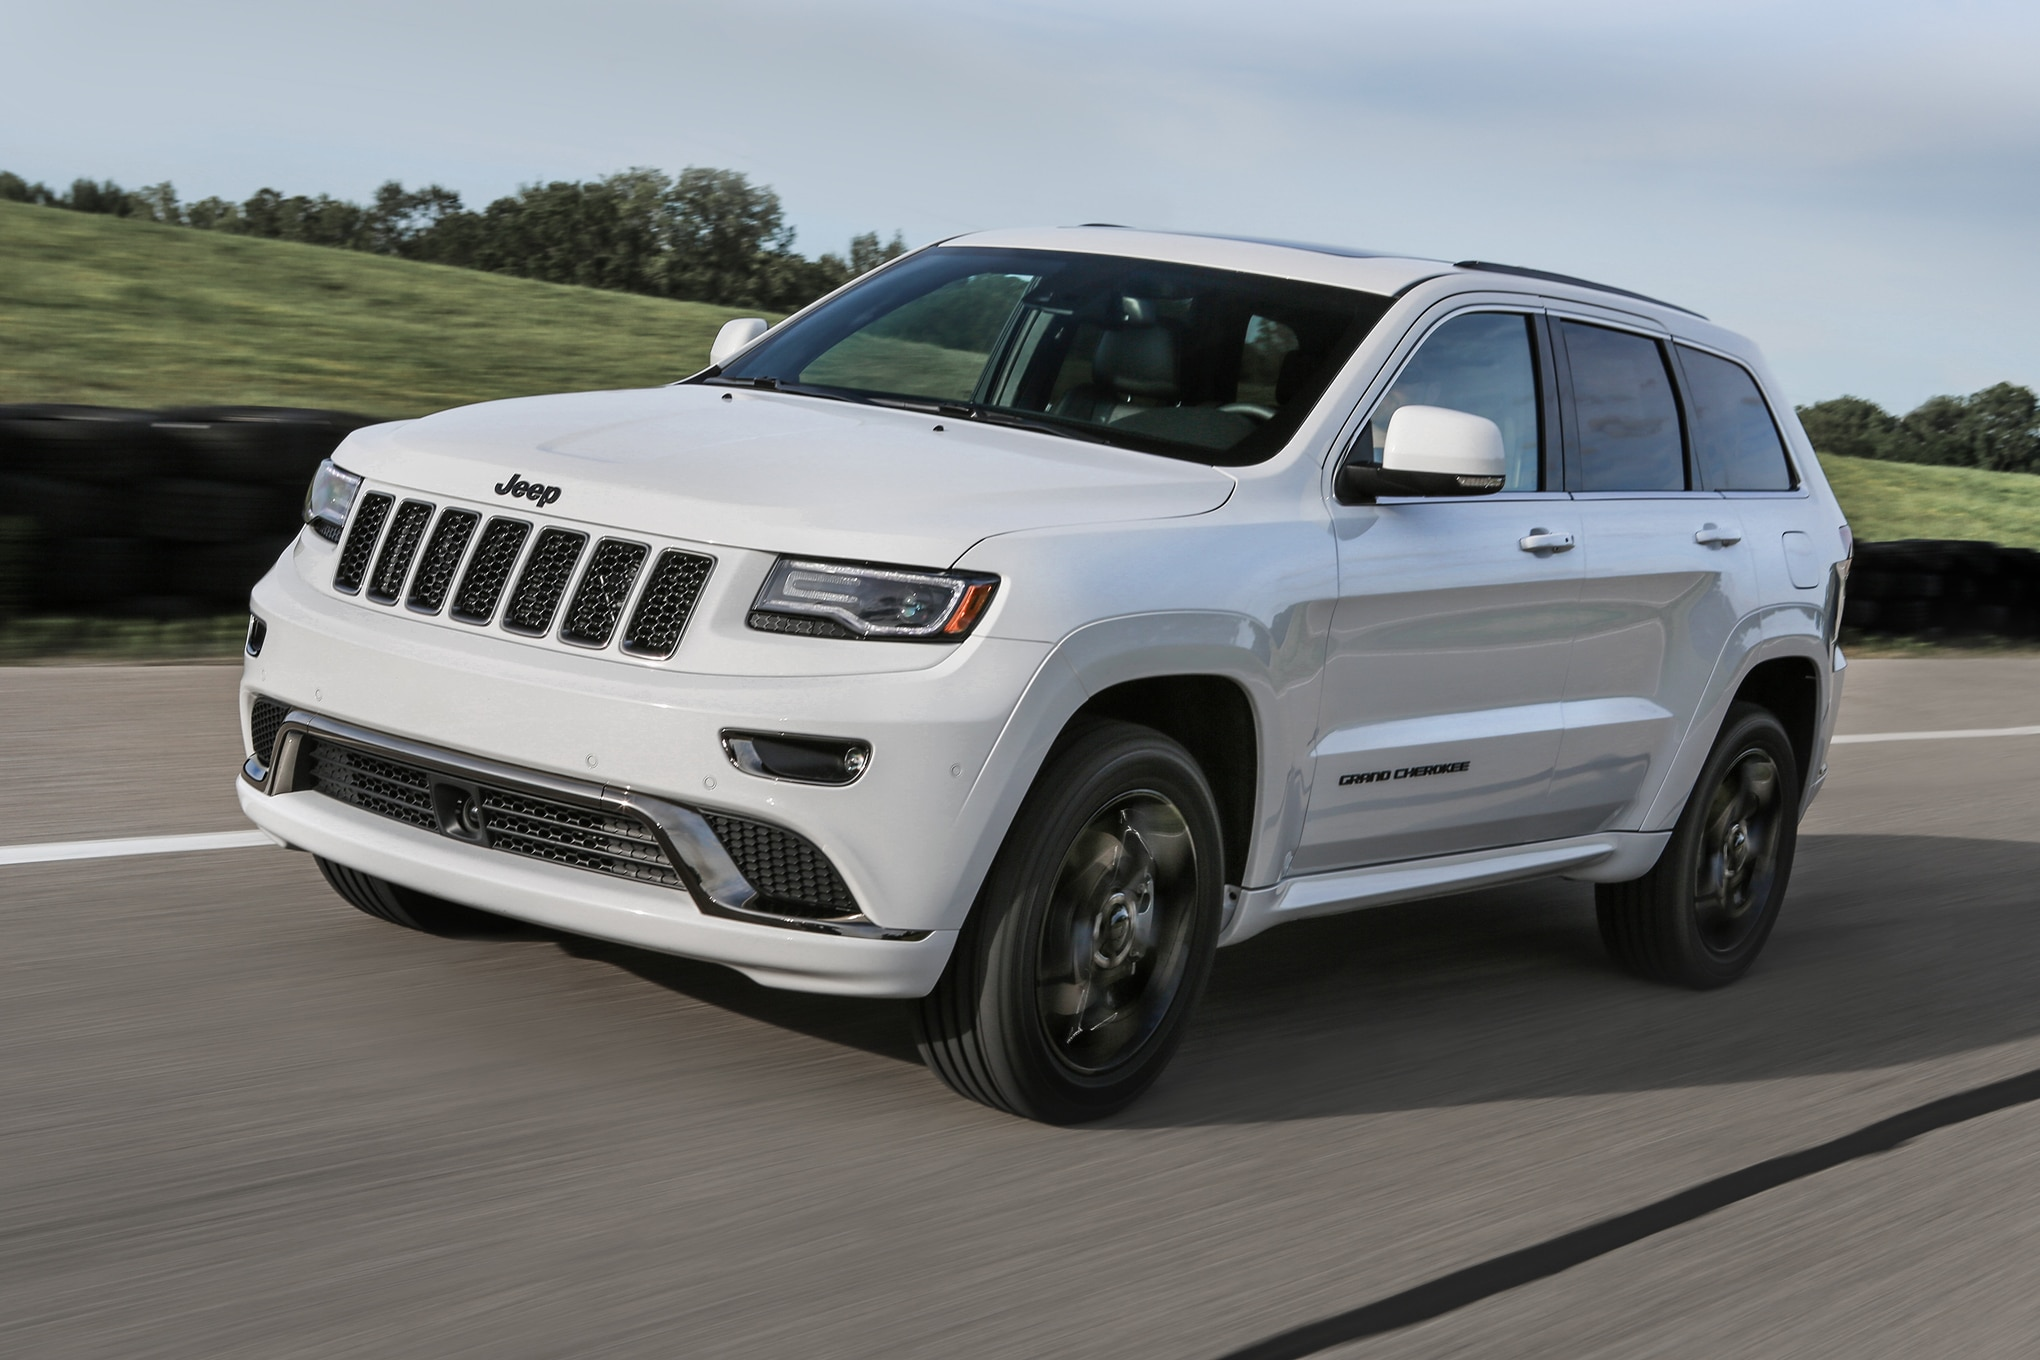 2016 jeep grand cherokee improves mpg adds engine stop start. Black Bedroom Furniture Sets. Home Design Ideas